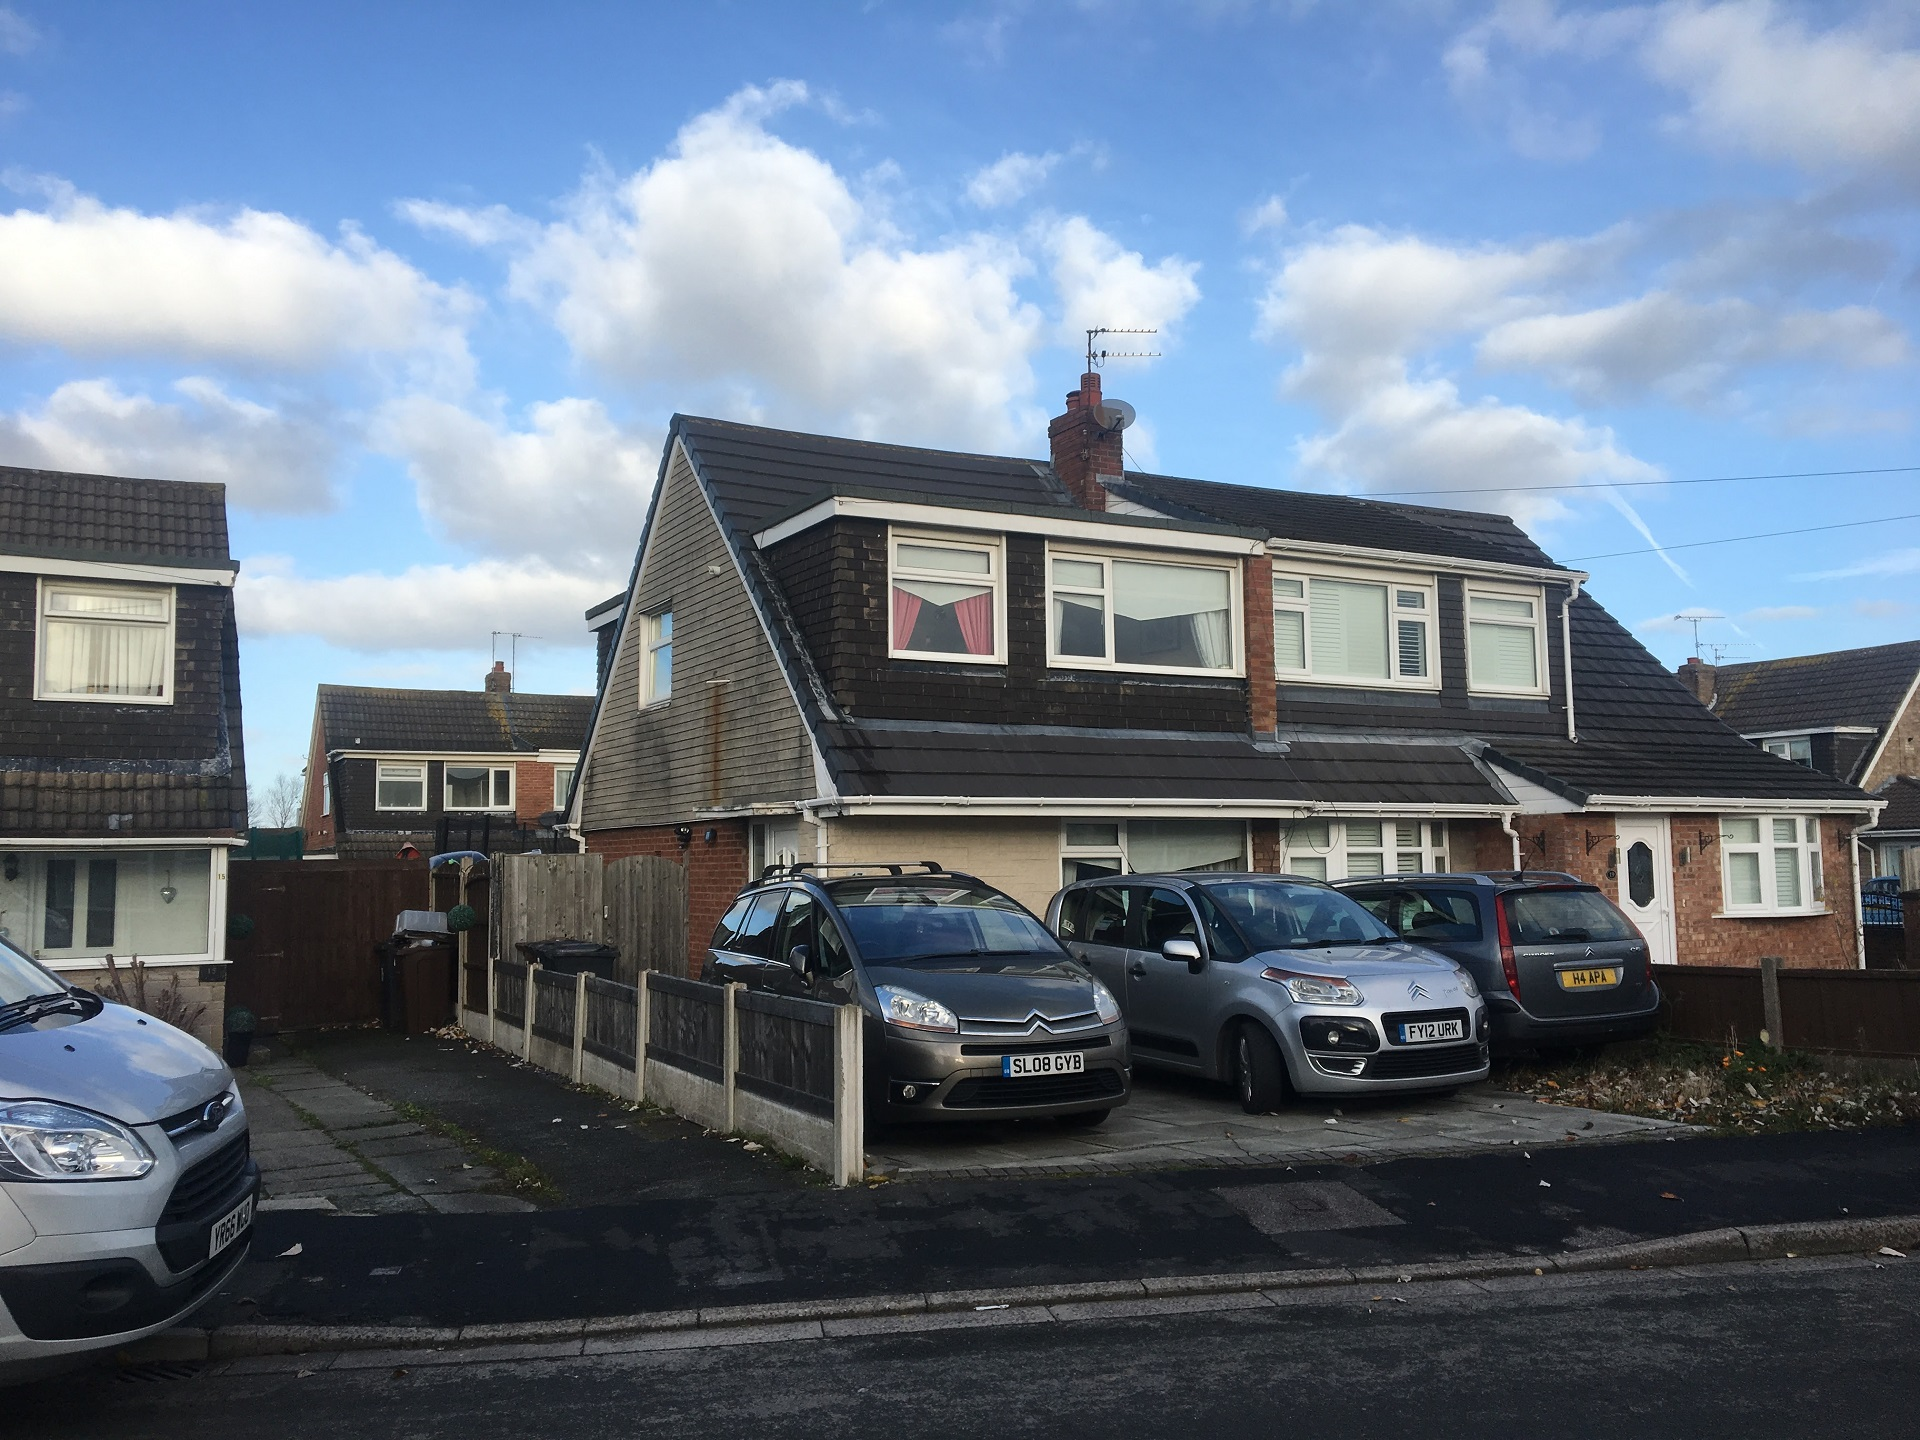 17 WASDALE AVE, MAGHULL, LIVERPOOL, L31 9DN